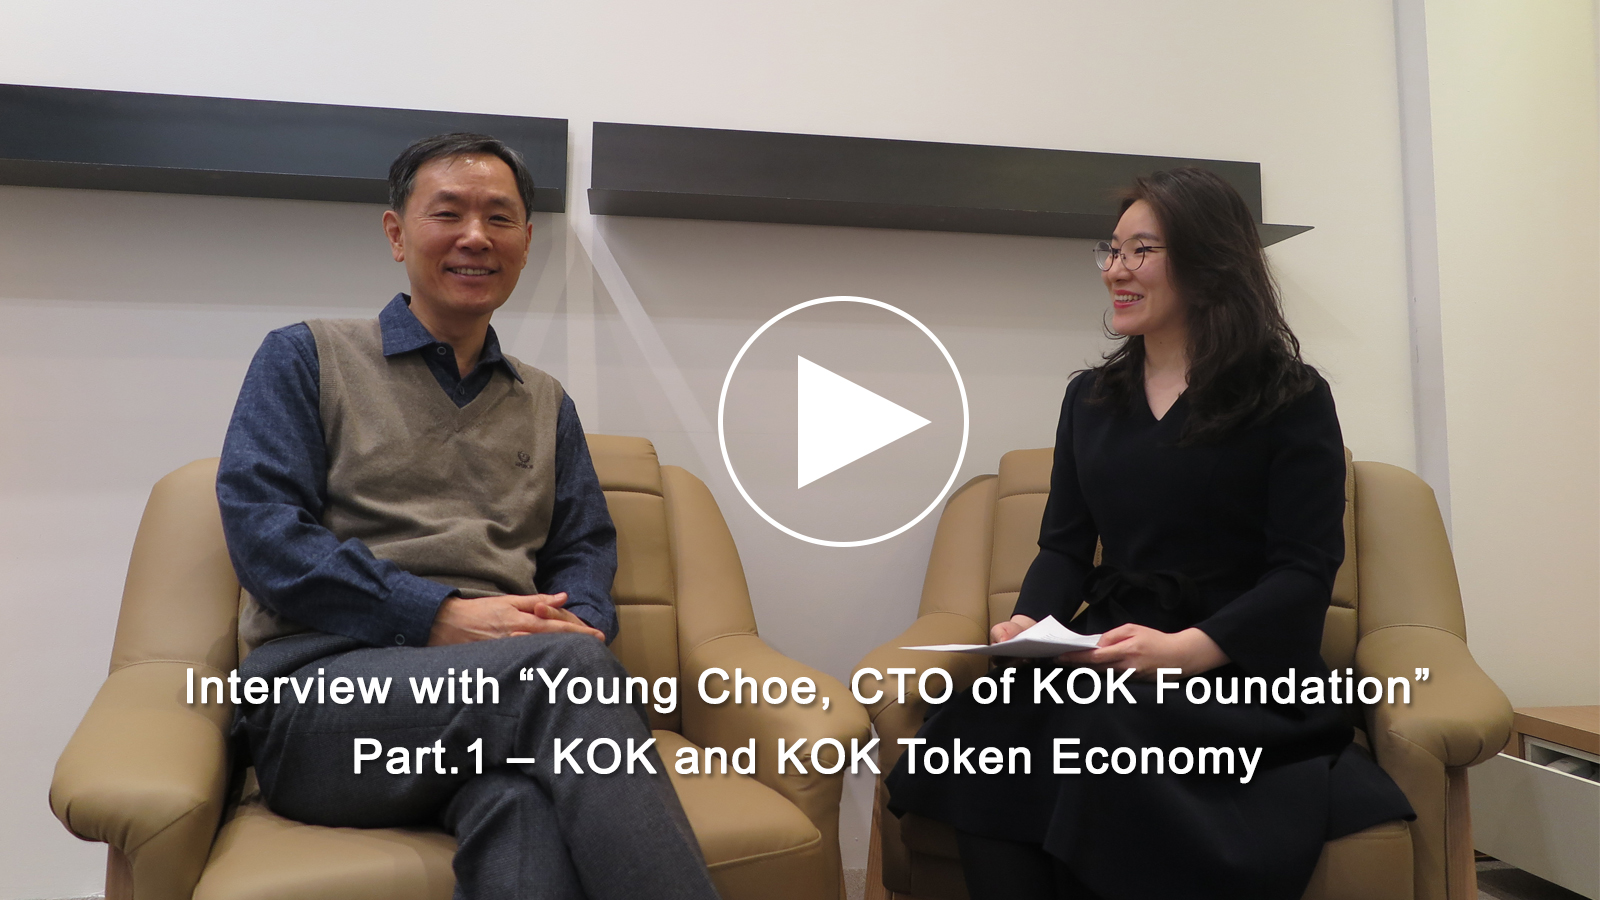 Interview with CTO Young Choe part.1 - KOK and KOK Token Economy